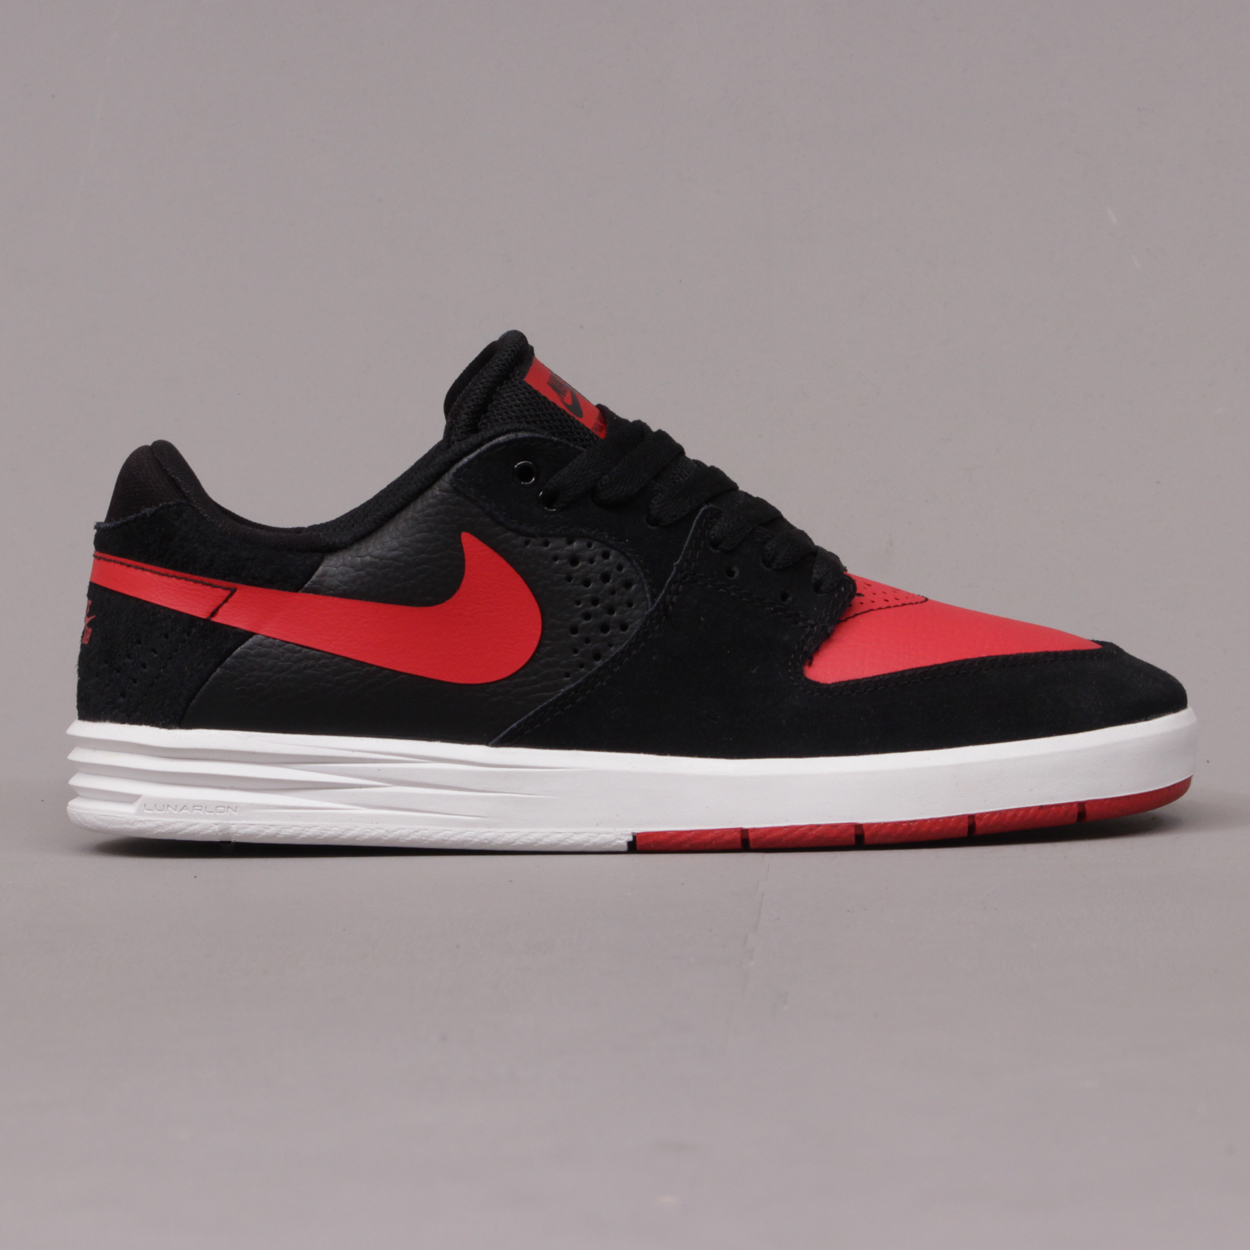 watch af693 594c7 Nike Paul Rodriguez 7 Shoes - Black, University Red and White